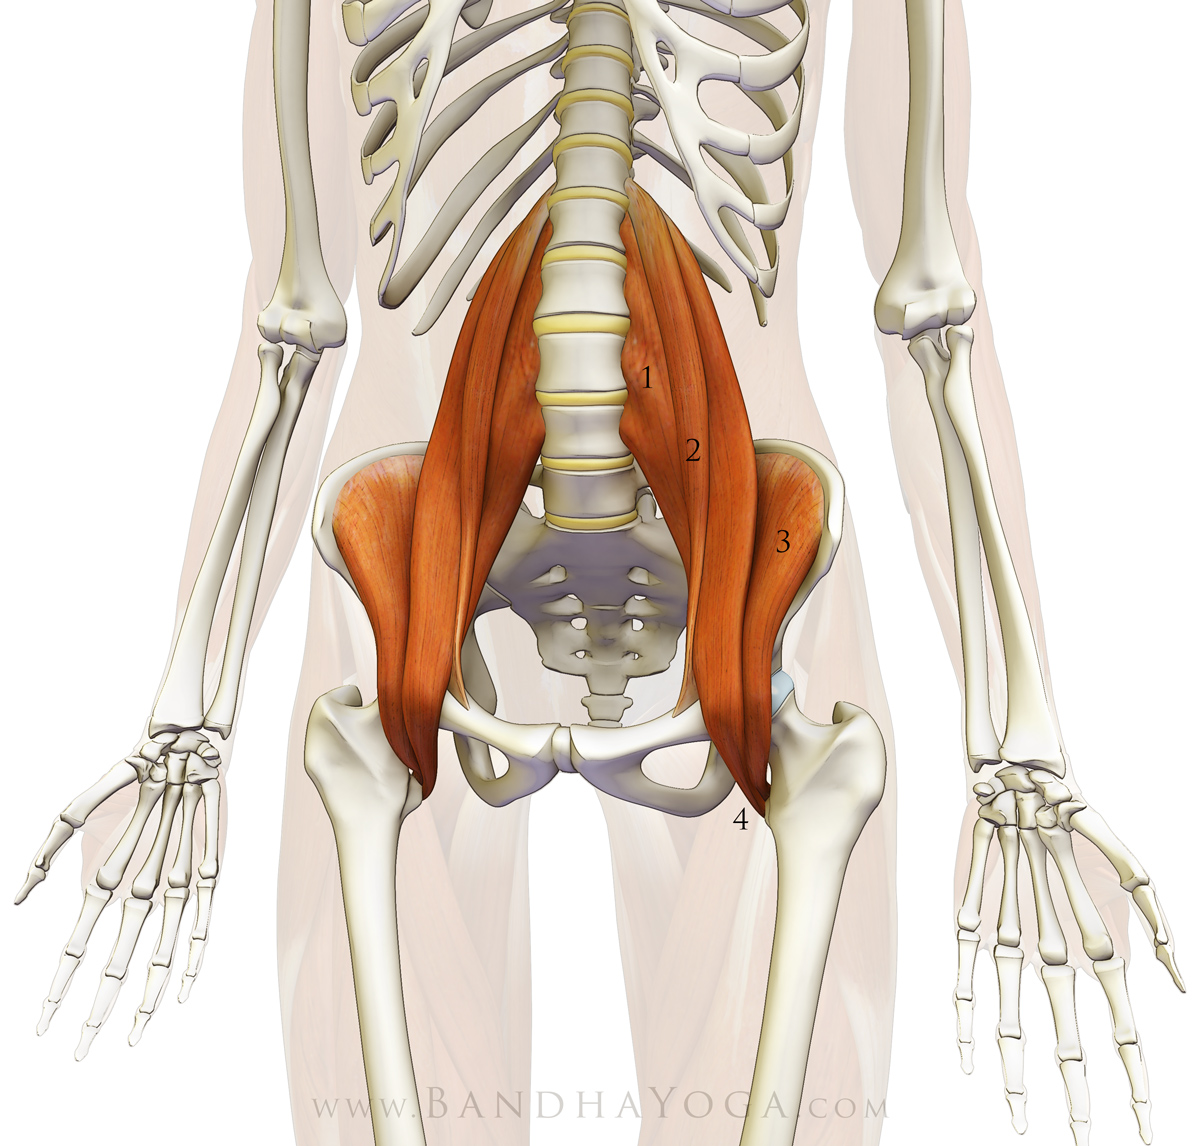 The sacroiliac joint, sciatica, and unexplained lower back pain ...